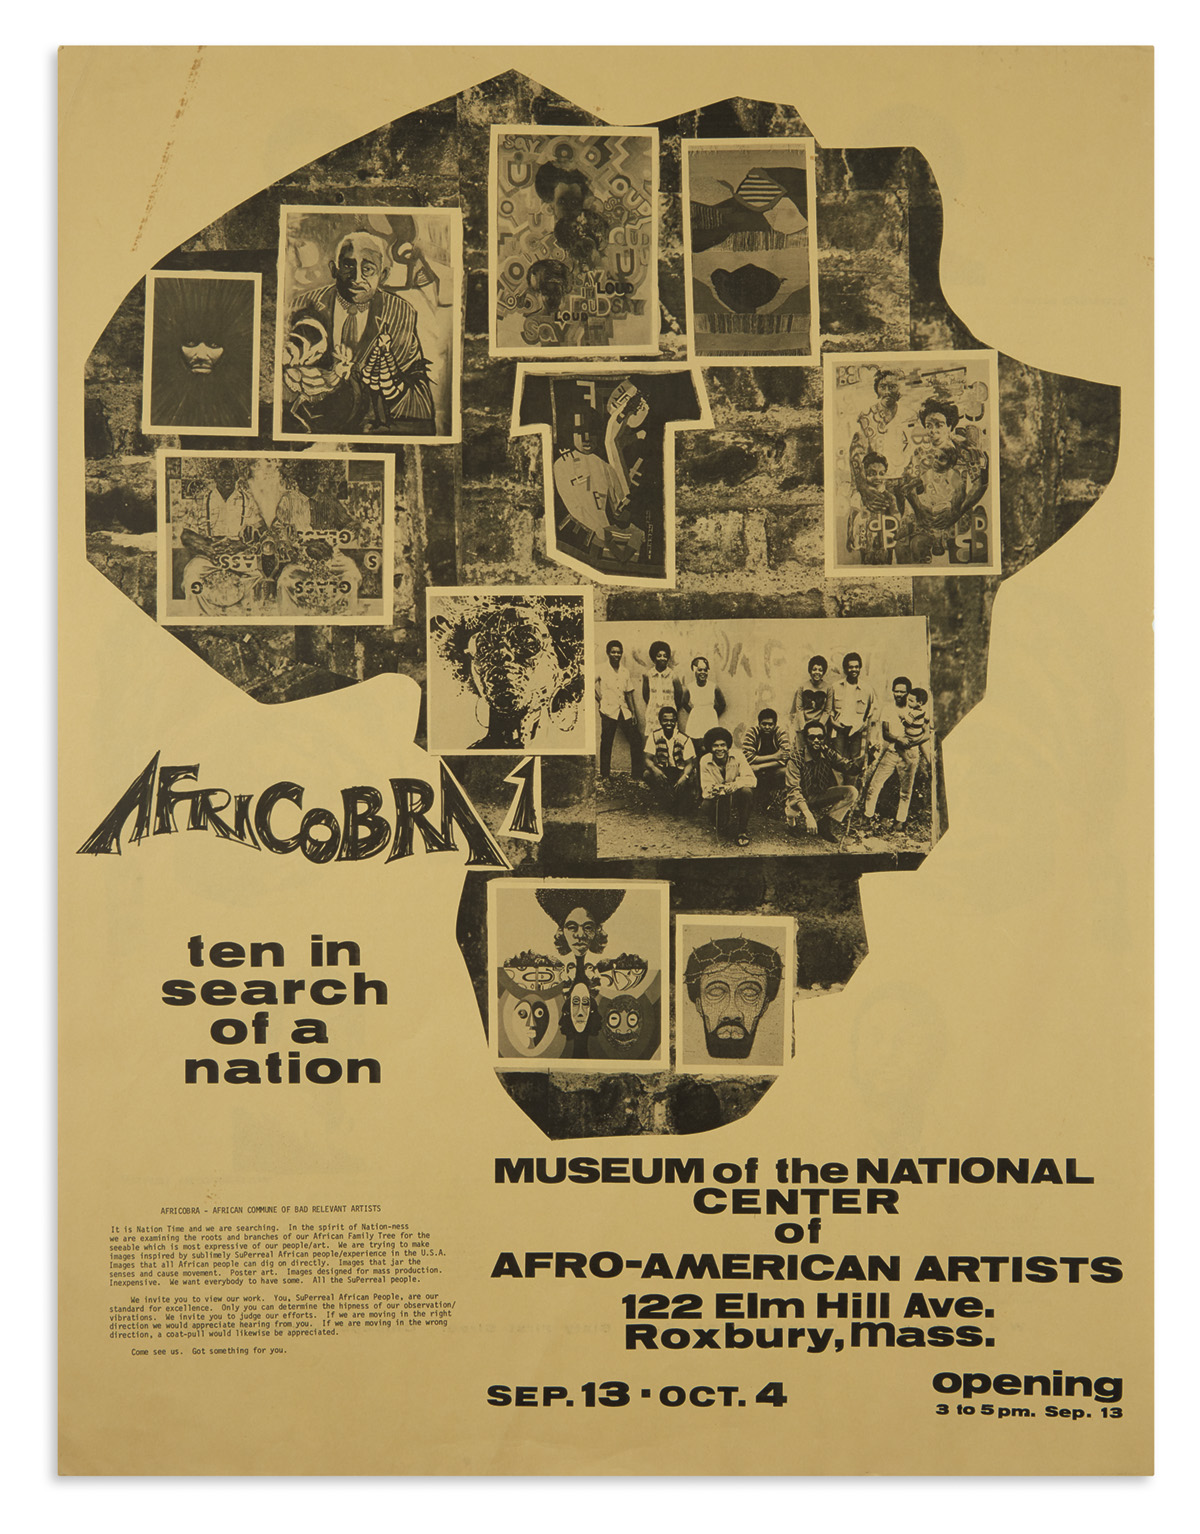 (ART)-Africobra-1-Ten-in-Search-of-a-Nation